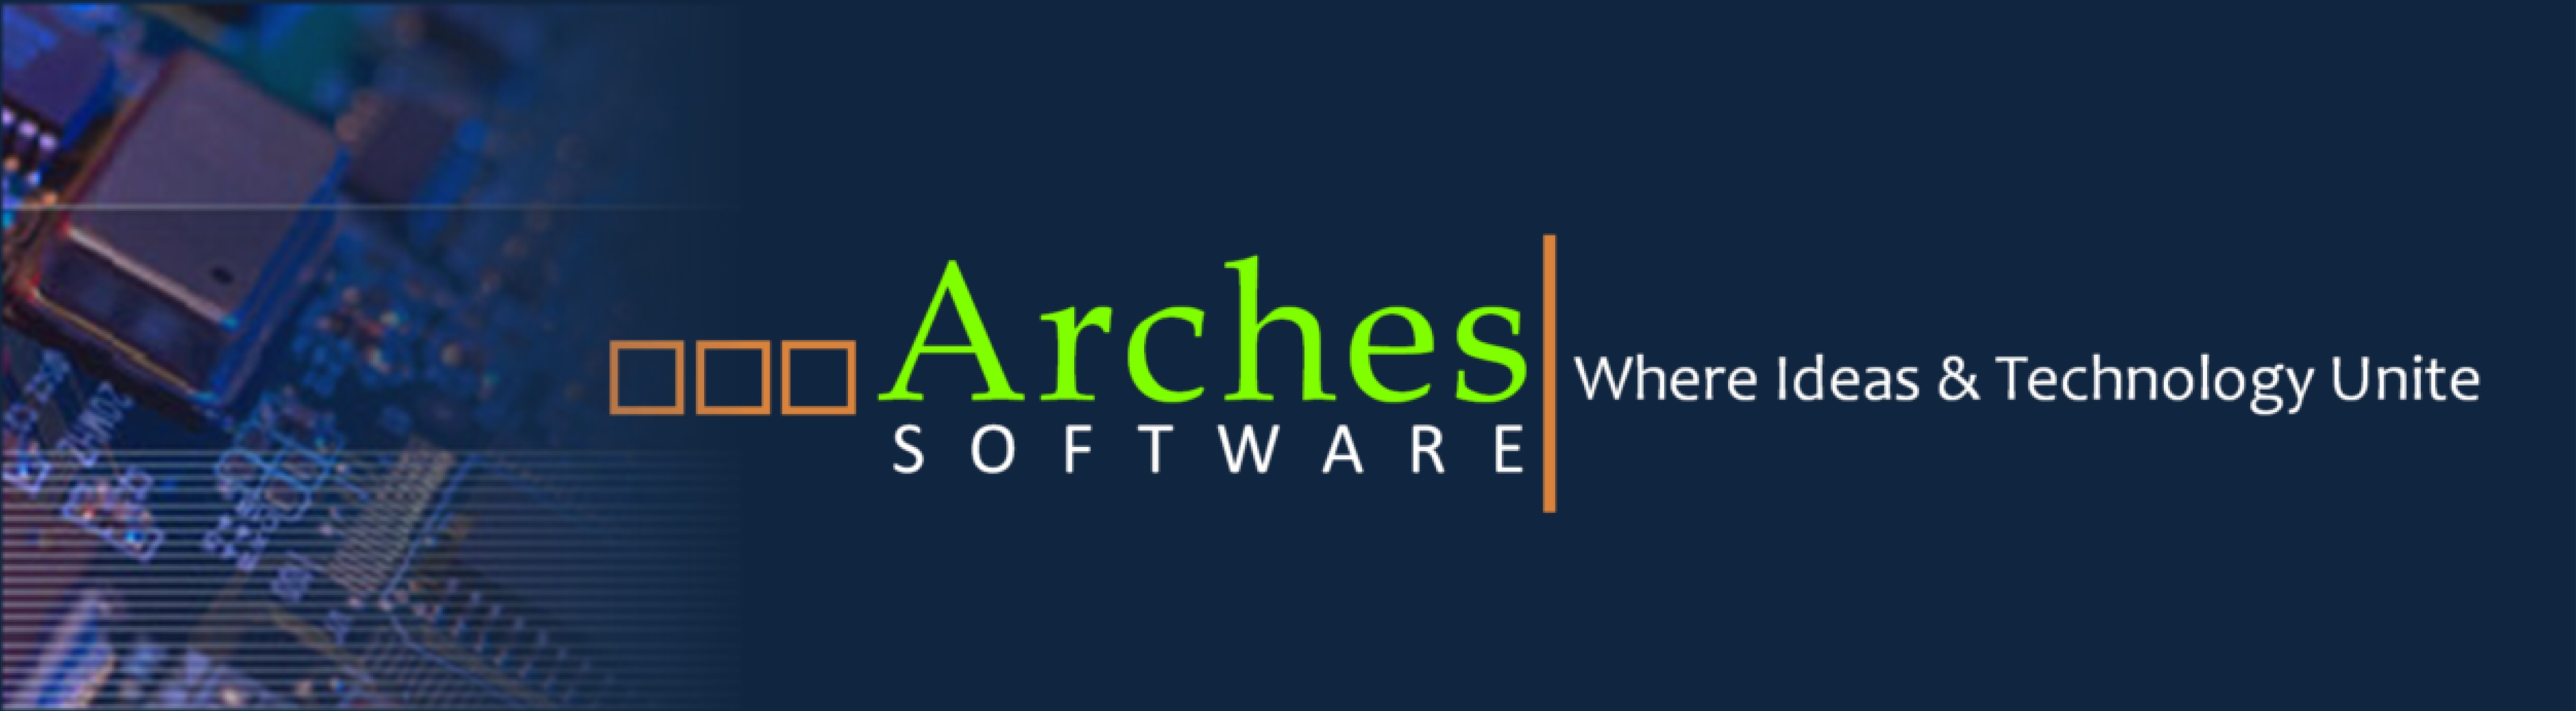 Arches Software | Where Ideas & Technology Unite